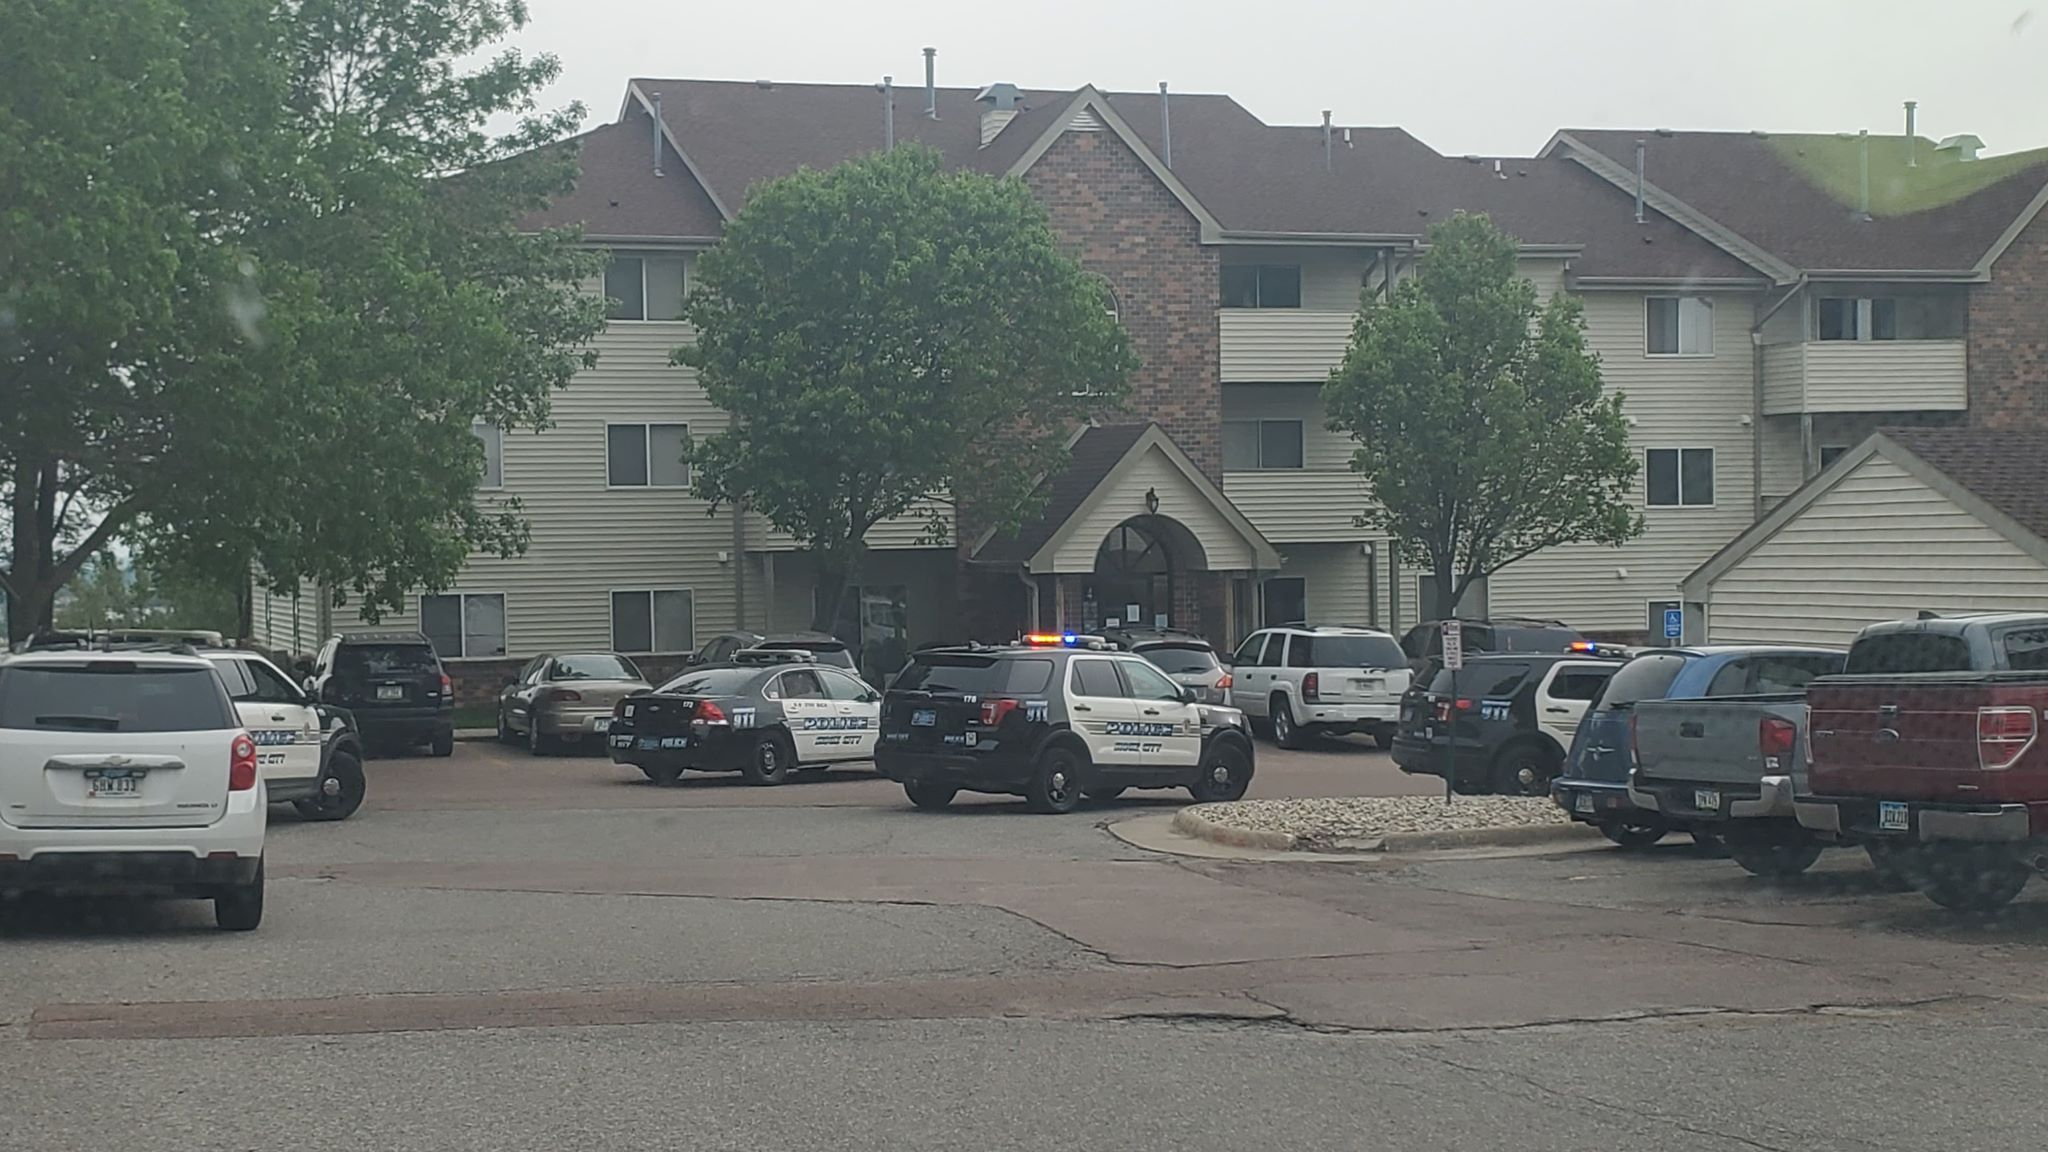 No Injuries at Prestwick Apartments After Accidental Weapon Discharge